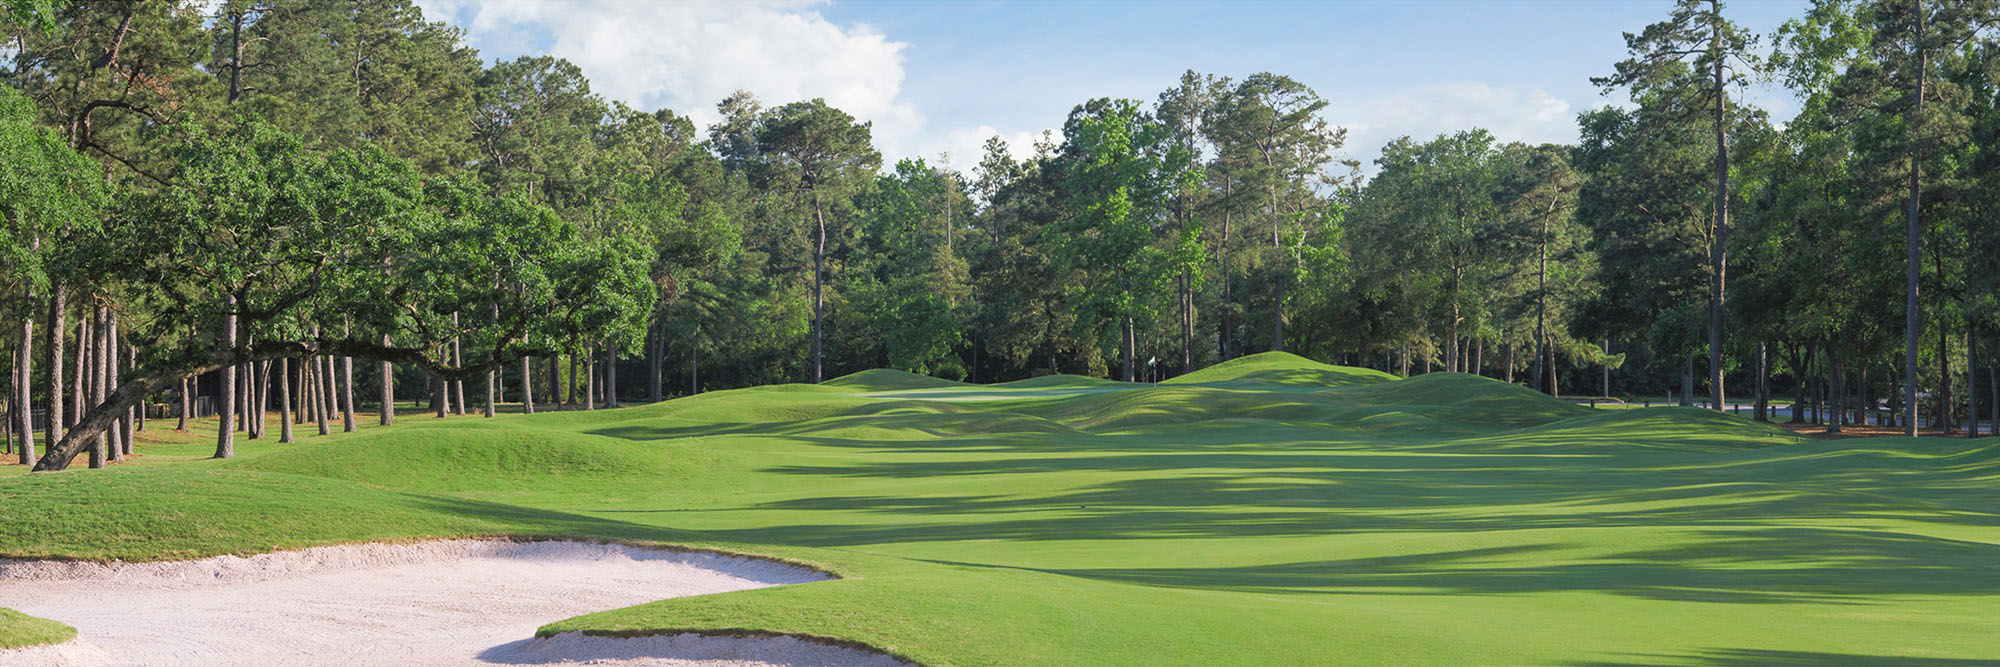 Golf Course Image - Woodlands-Palmer King Course No. 5